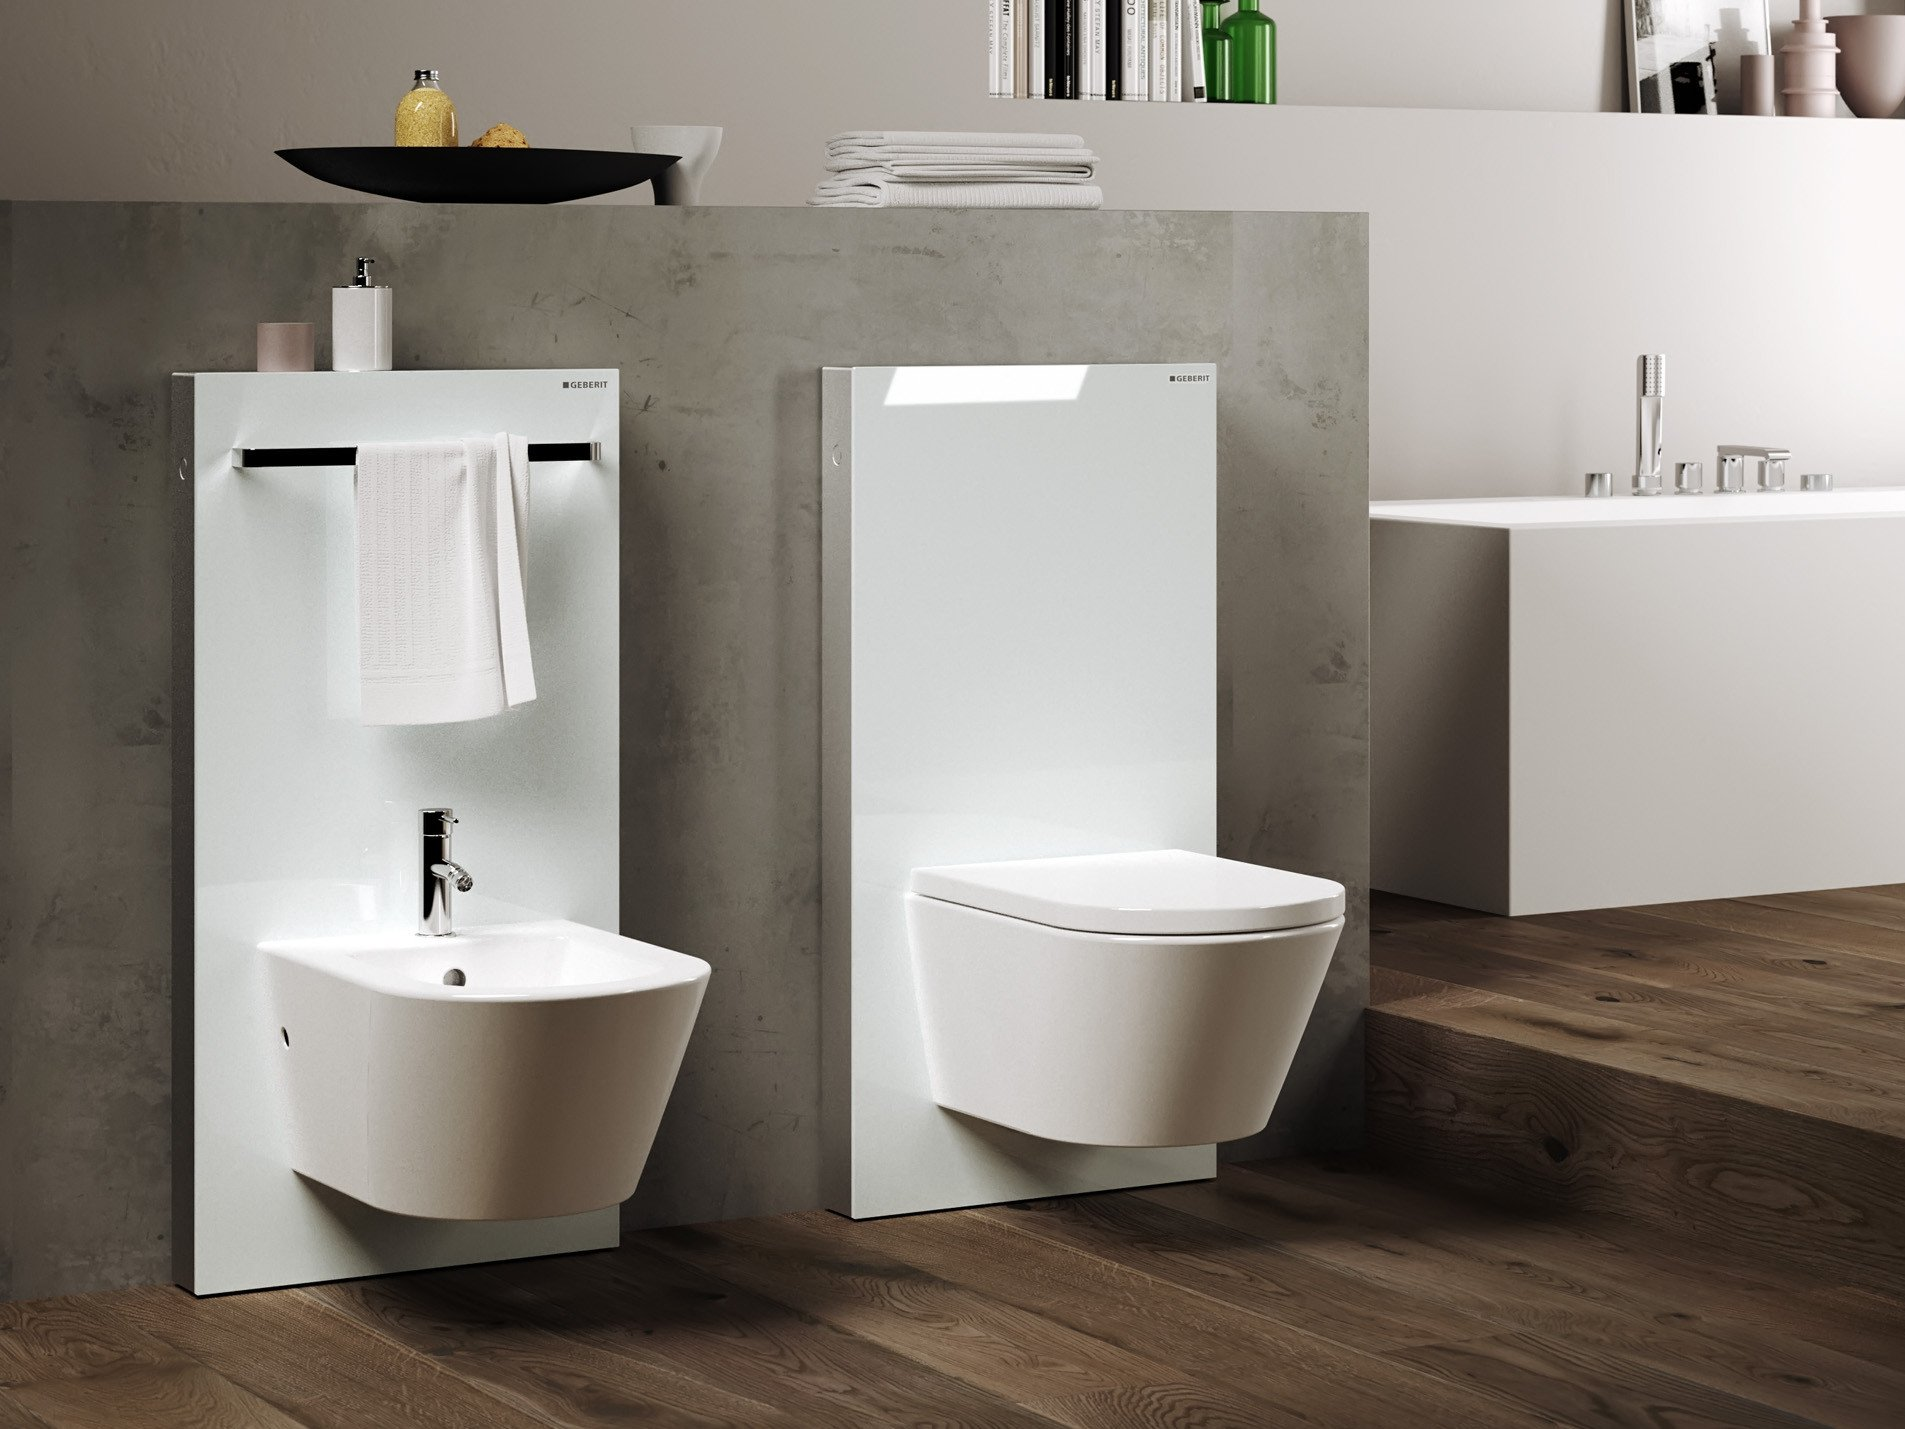 flache vorwandinstallation f r wc bidet und waschtisch bad und sanit r news produkte. Black Bedroom Furniture Sets. Home Design Ideas